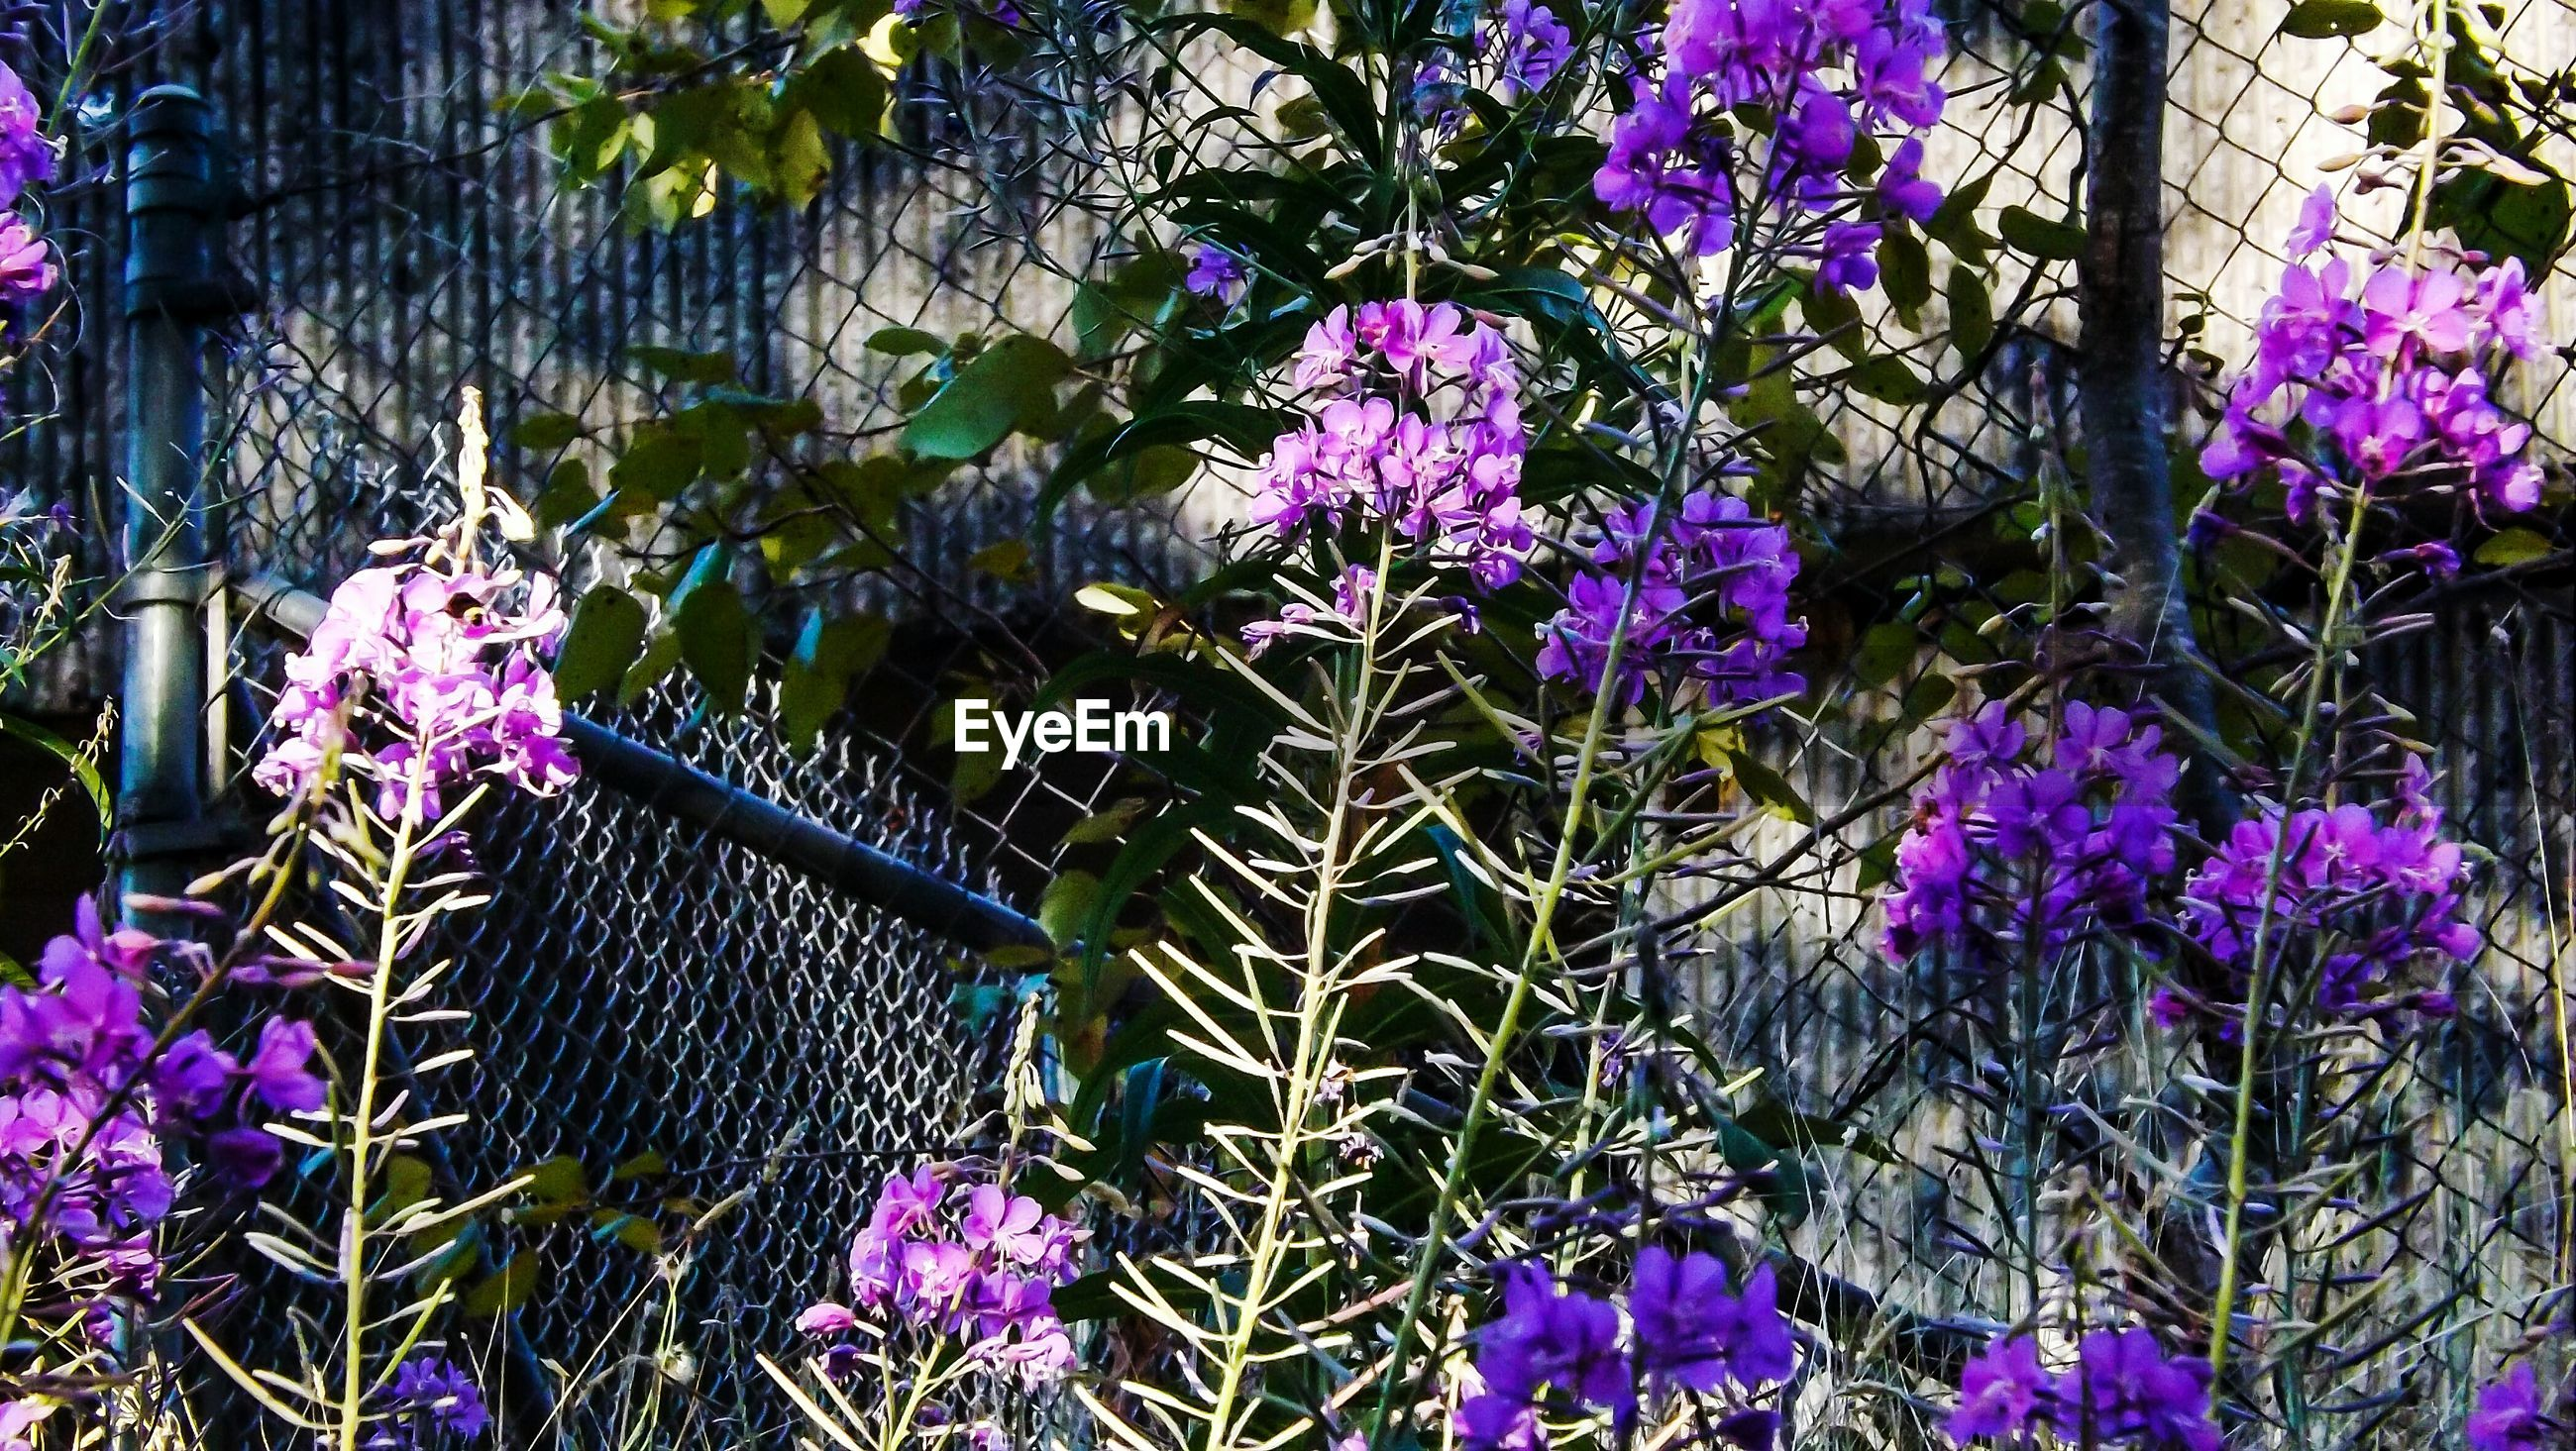 Purple flowers blooming against chainlink fence